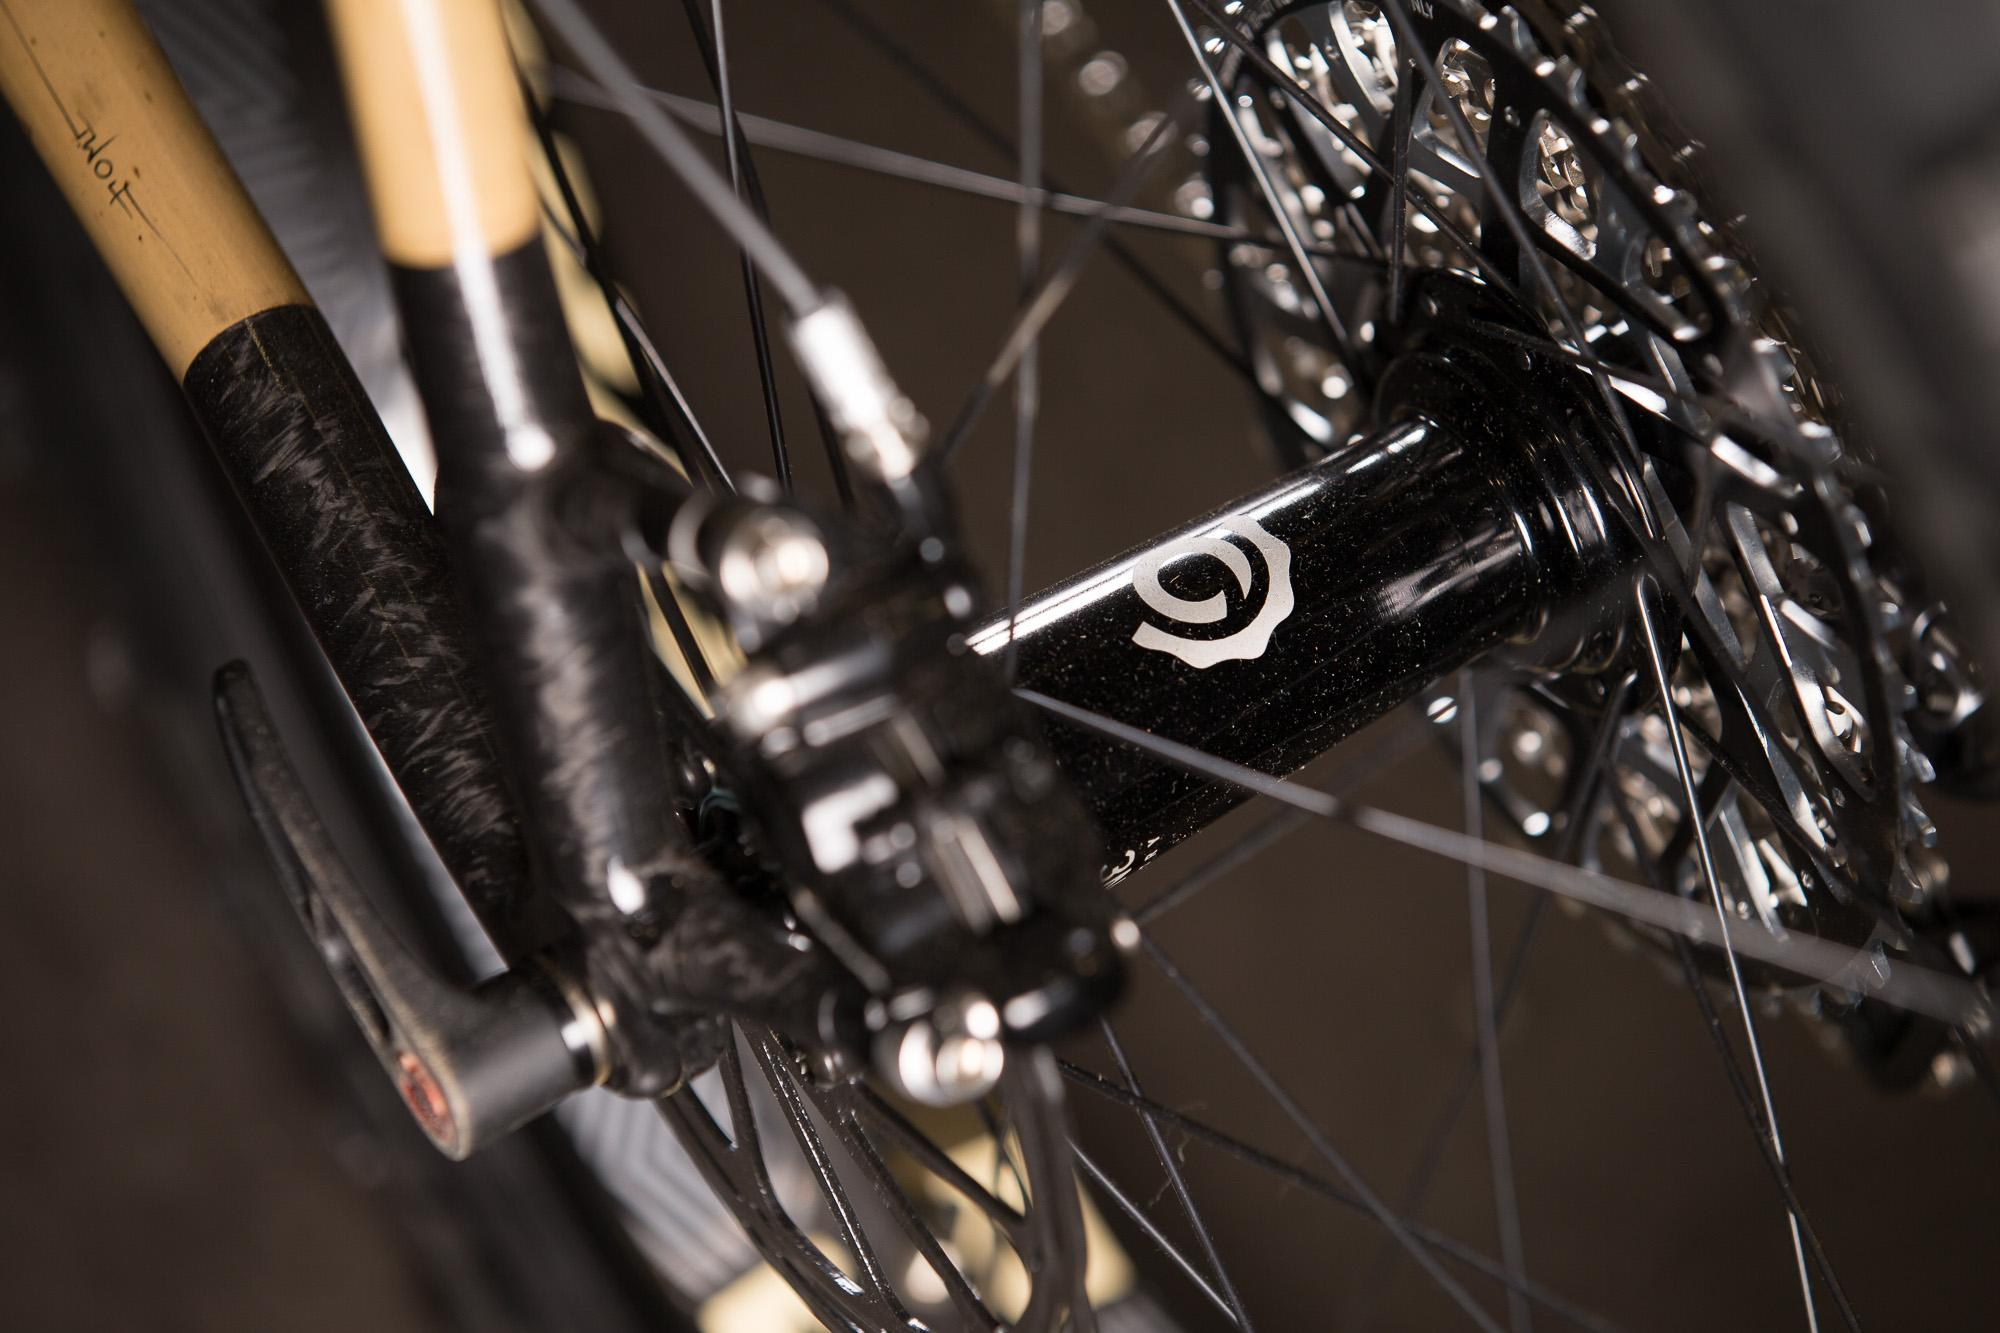 2016 NAHBS: Boo Bicycles SL-F Carbon Fatty with a Carbonara Lauf Fork